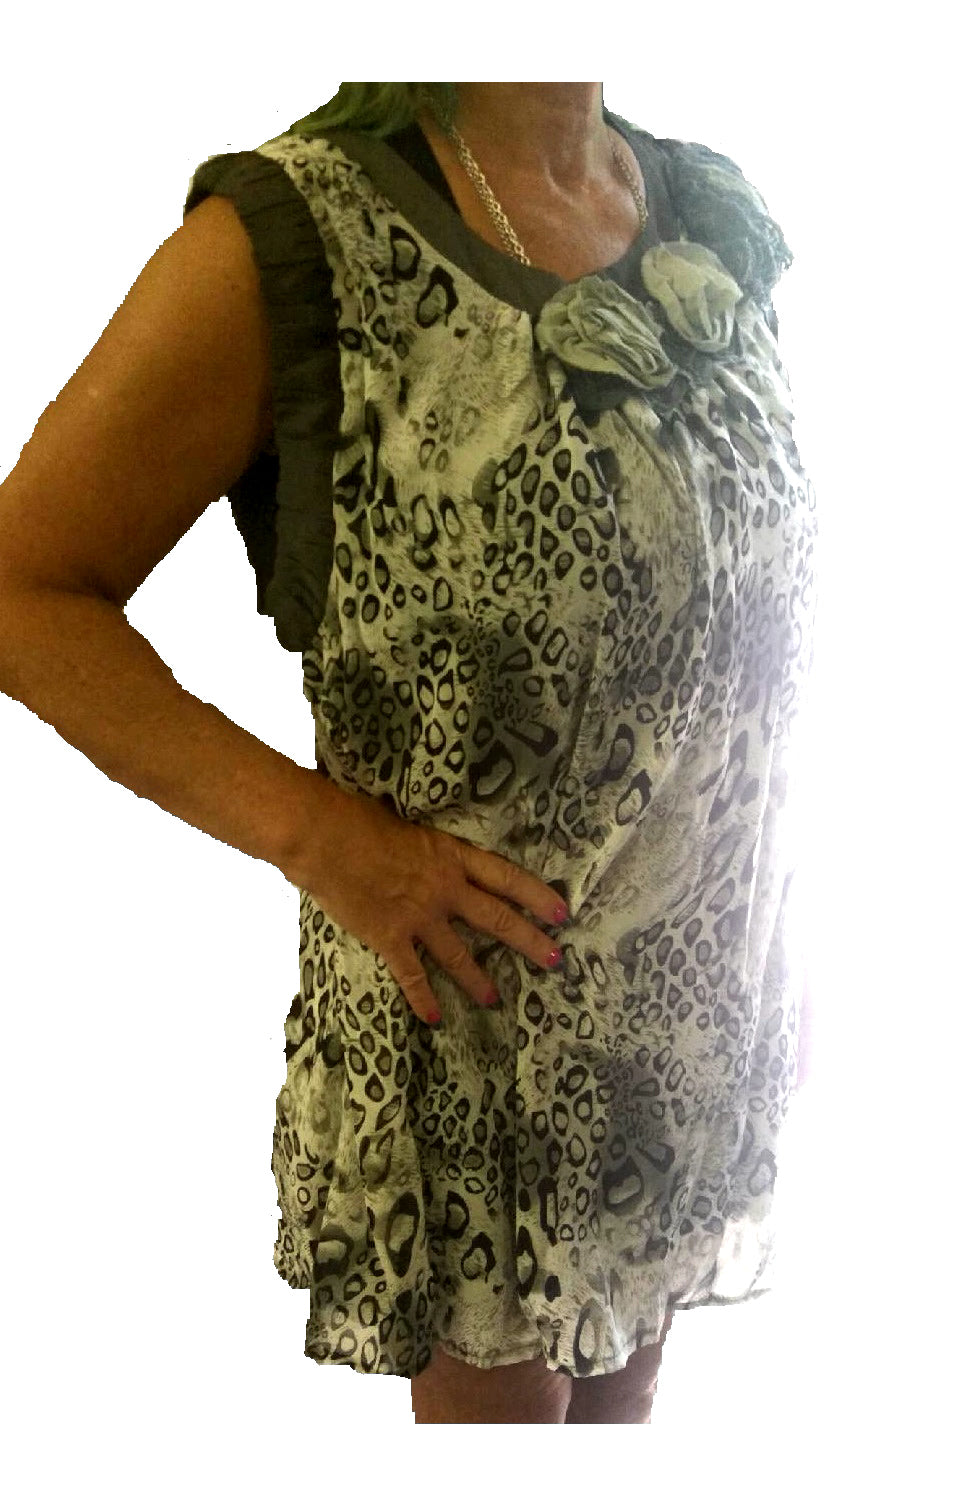 Lady Noiz Leopard Cheetah Sleeveless Flower Tunic Shirt Top Plus Dress Black